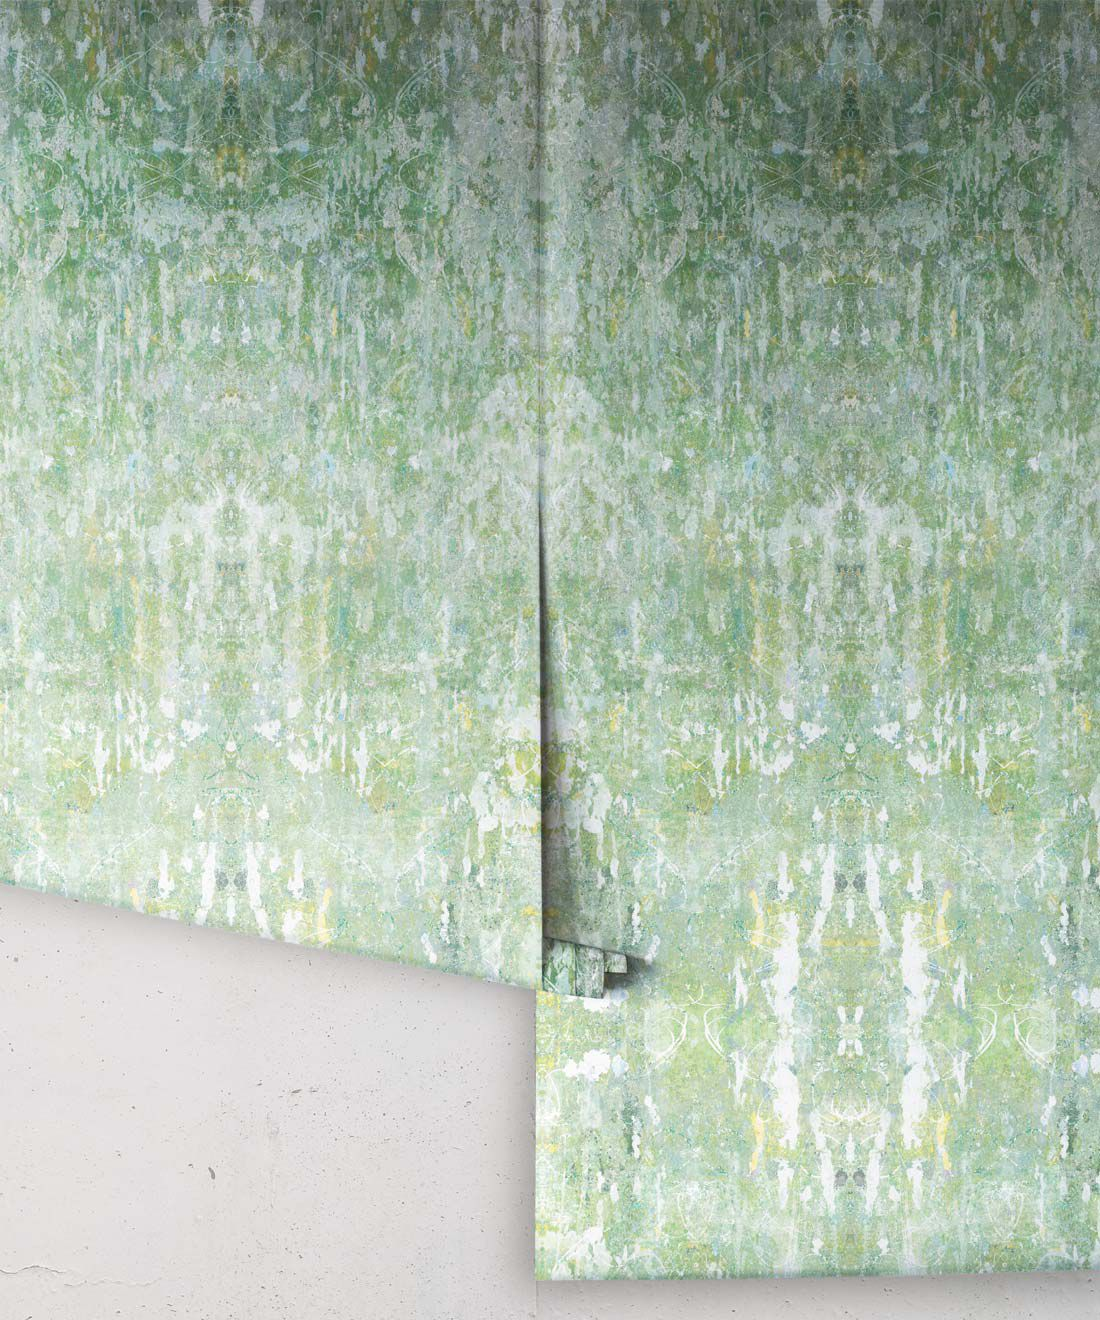 Hori Wallpaper by Simcox • Color Green • Abstract Wallpaper • rolls